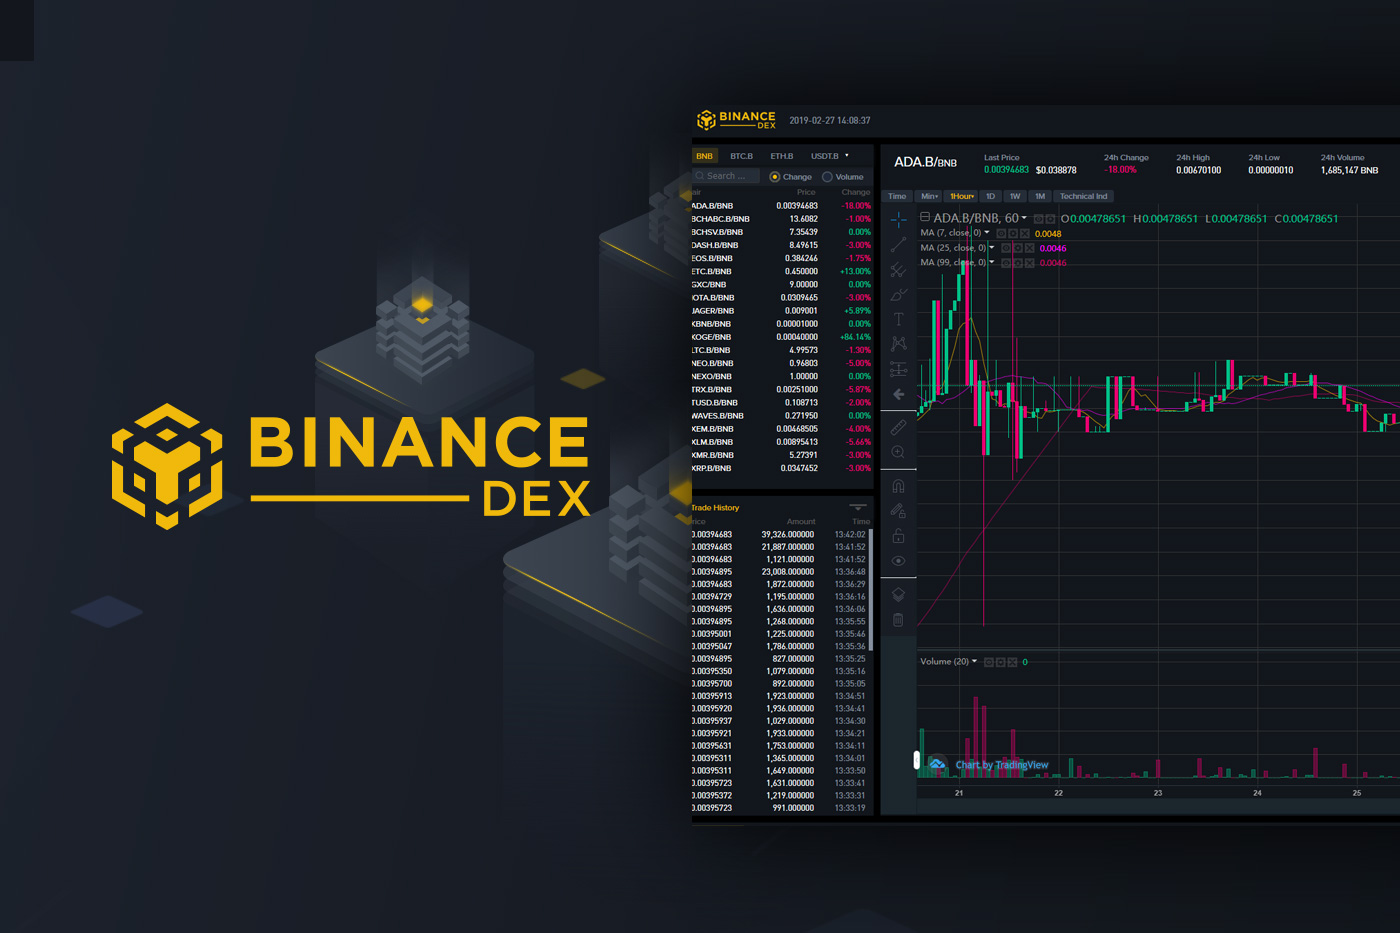 биржа криптовалют, binance, binance coin